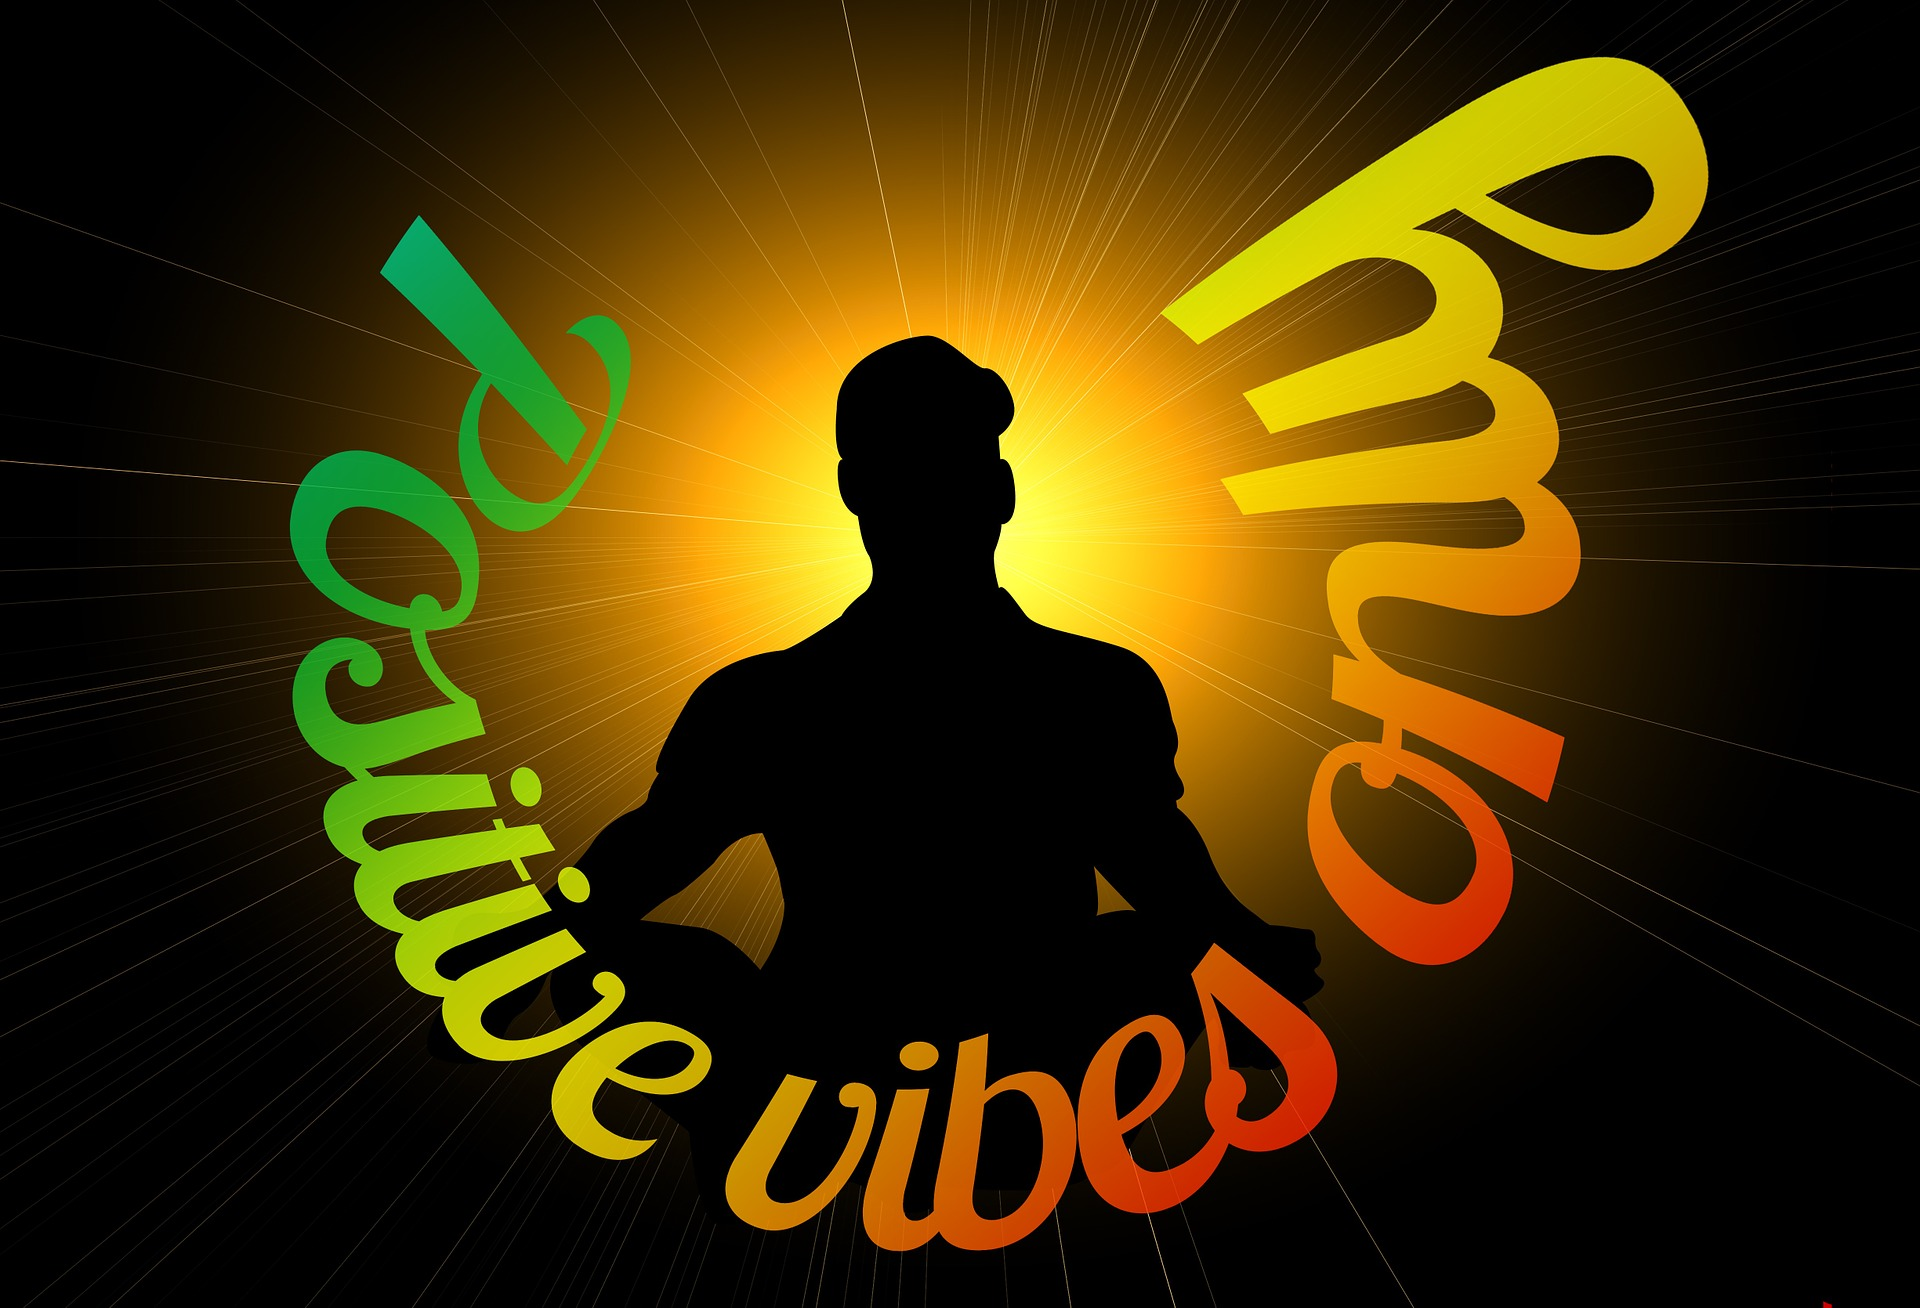 positive vibes image